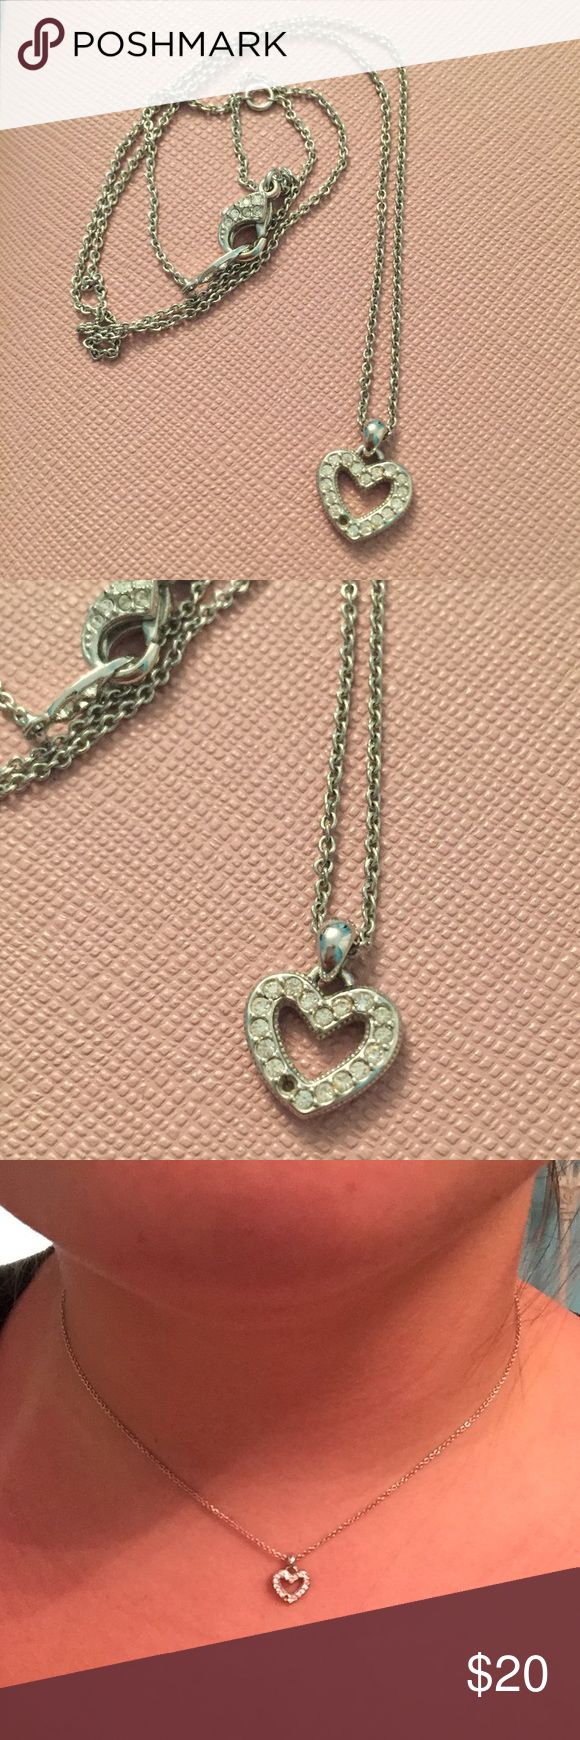 Sterling Silver Diamond Heart Necklace Beautiful authentic sterling silver heart necklace! Diamonds are not real but great quality. Only flaw in the necklace is that it is missing a diamond but it is barely noticeable. Great necklace to give a loved one or wear for yourself :) comment with any questions! Lord & Taylor Jewelry Necklaces